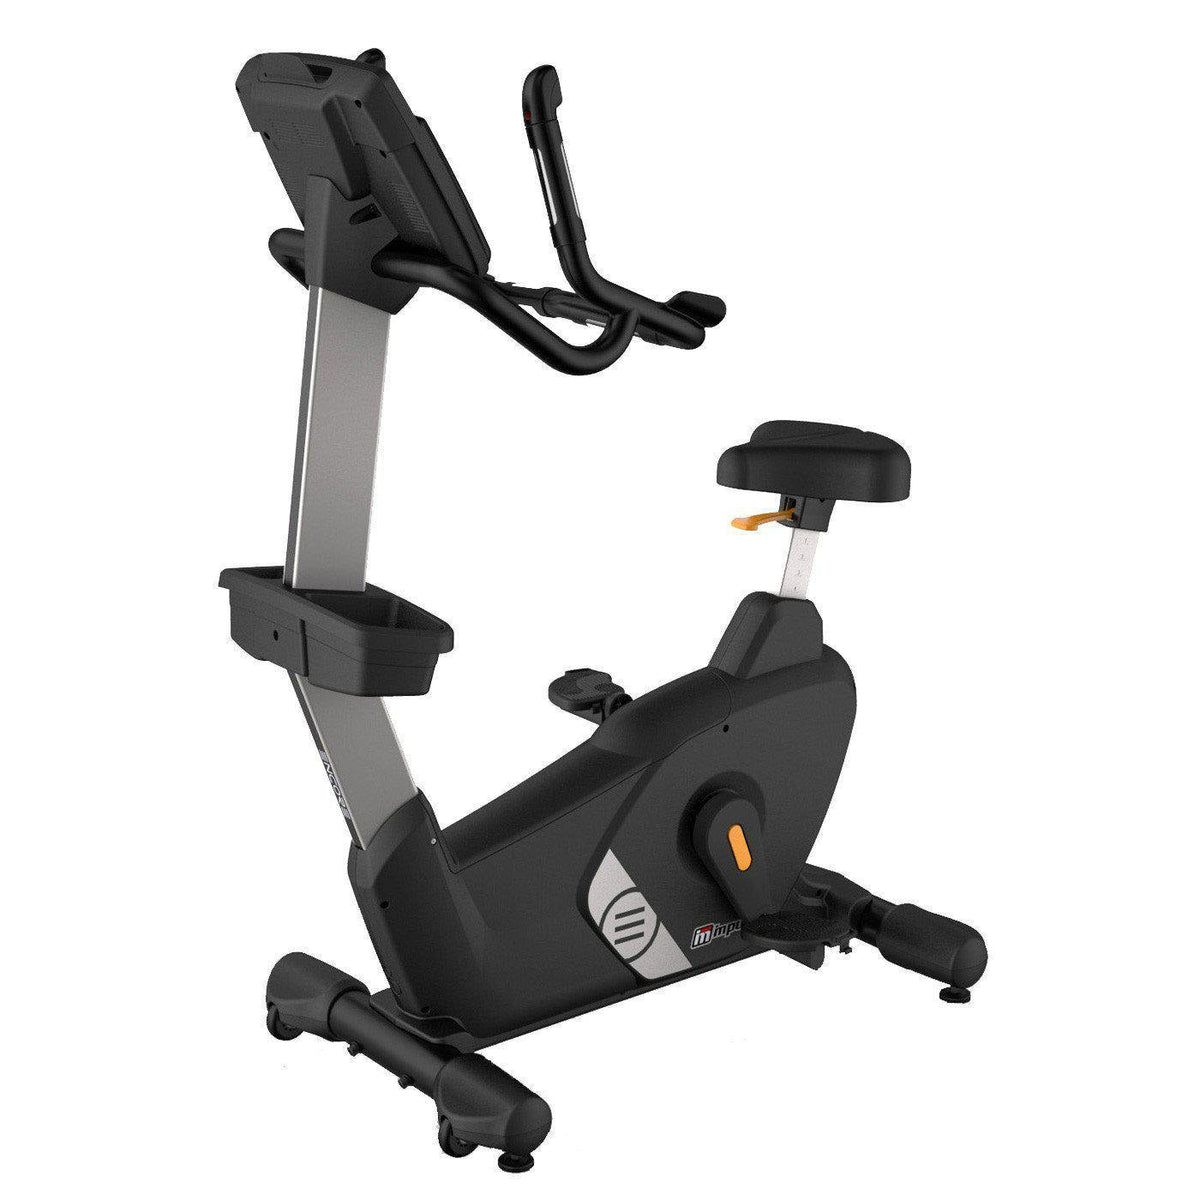 Impulse Encore ECU7 Upright Exercise Bike-Exercise Bike-Impulse Fitness-Cardio Online